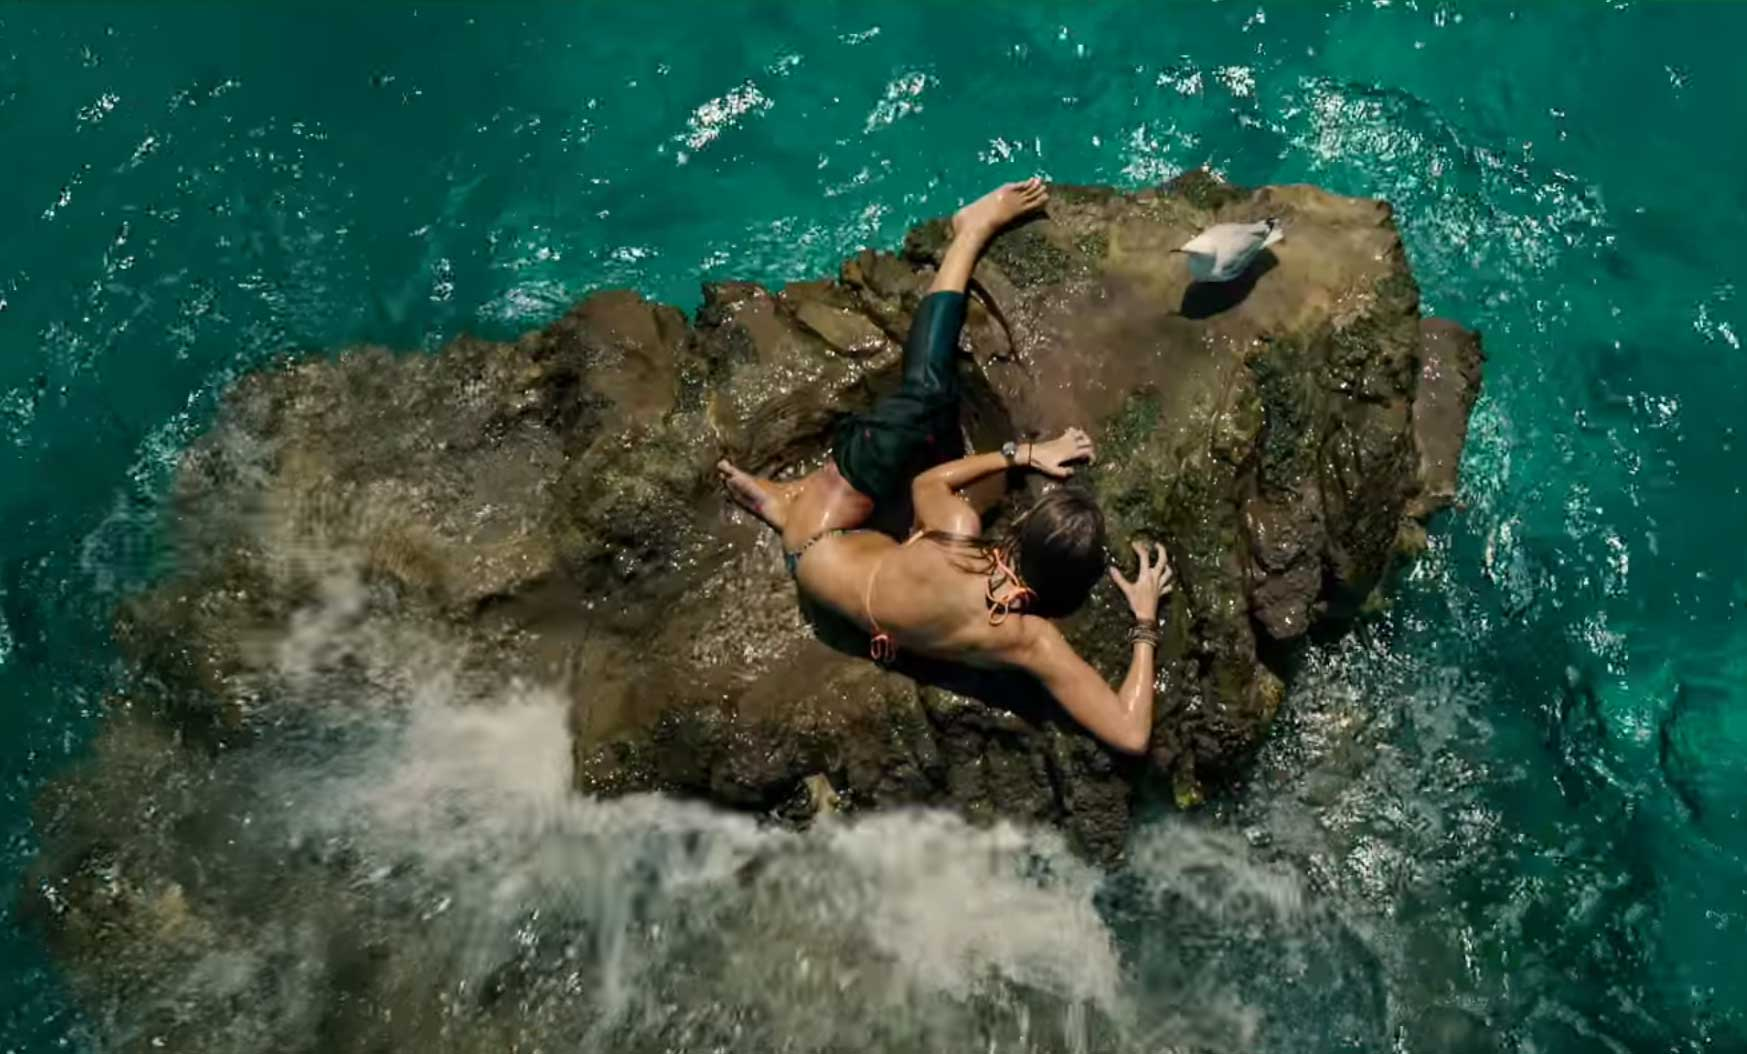 'The Shallows' is Getting a 4k HDR BluRay Release In September - Modern Horrors